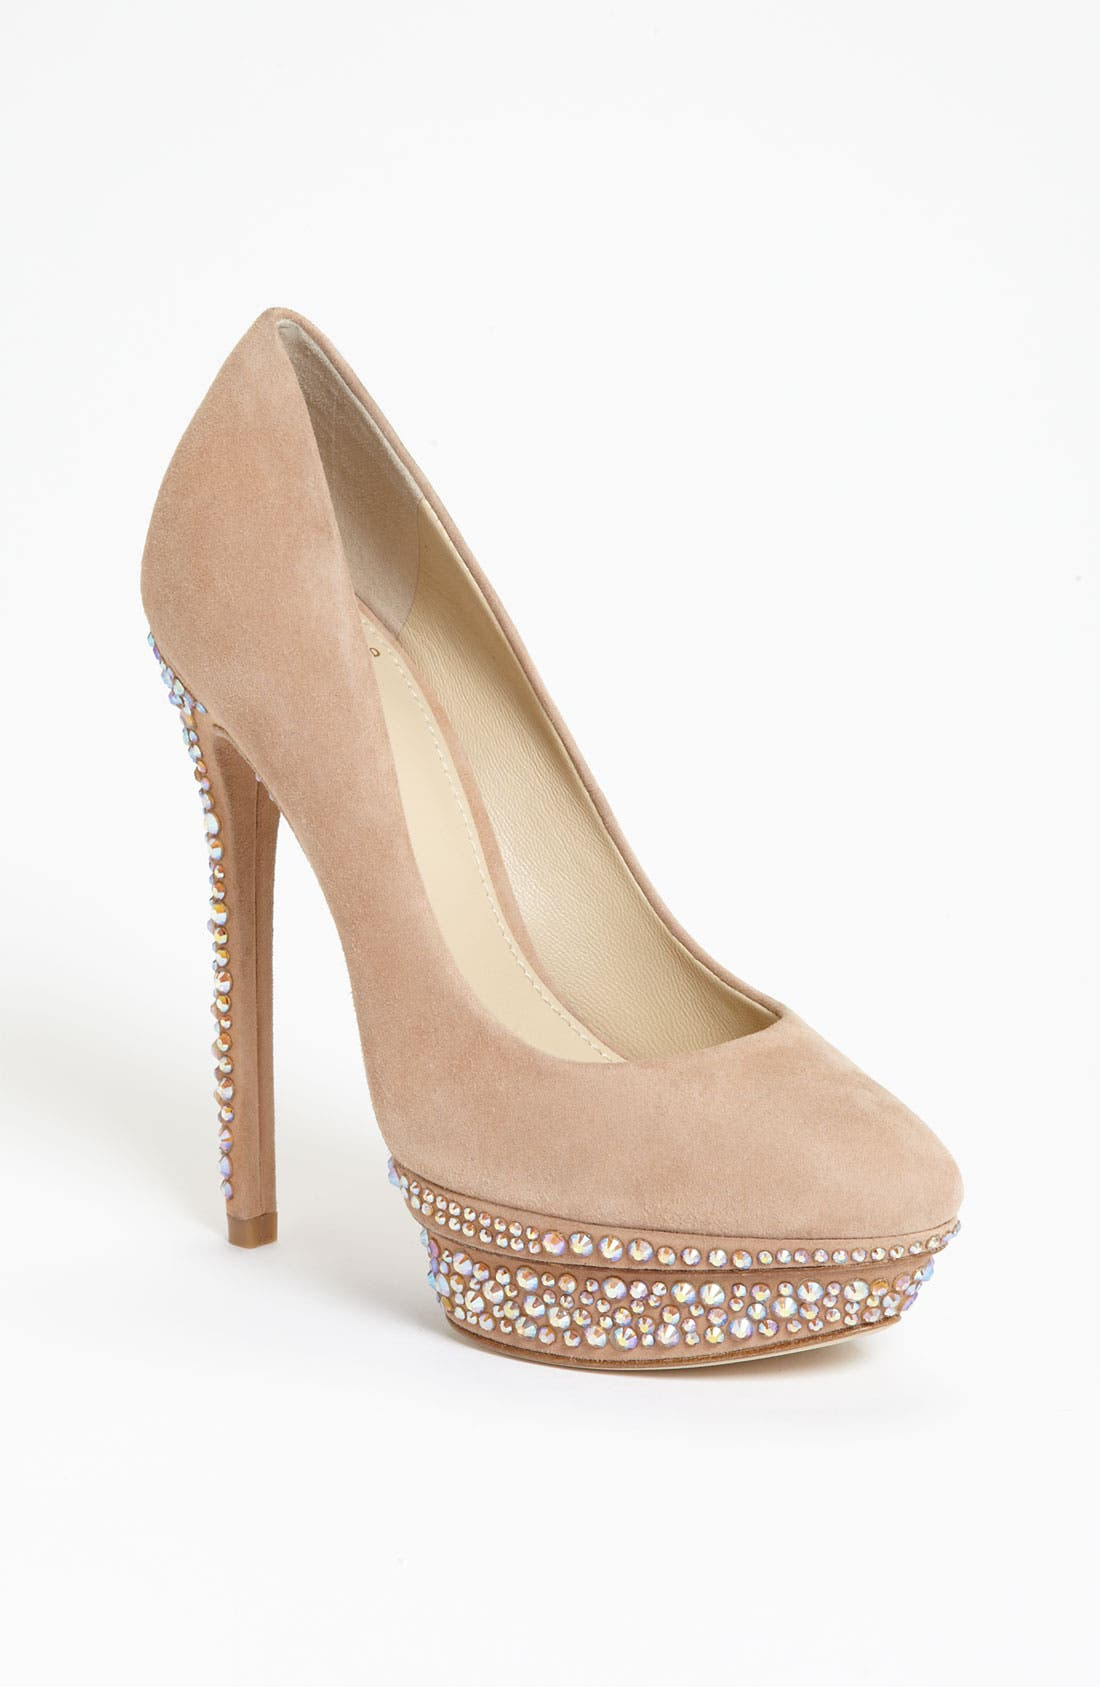 Alternate Image 1 Selected - B Brian Atwood 'Francoise' Pump